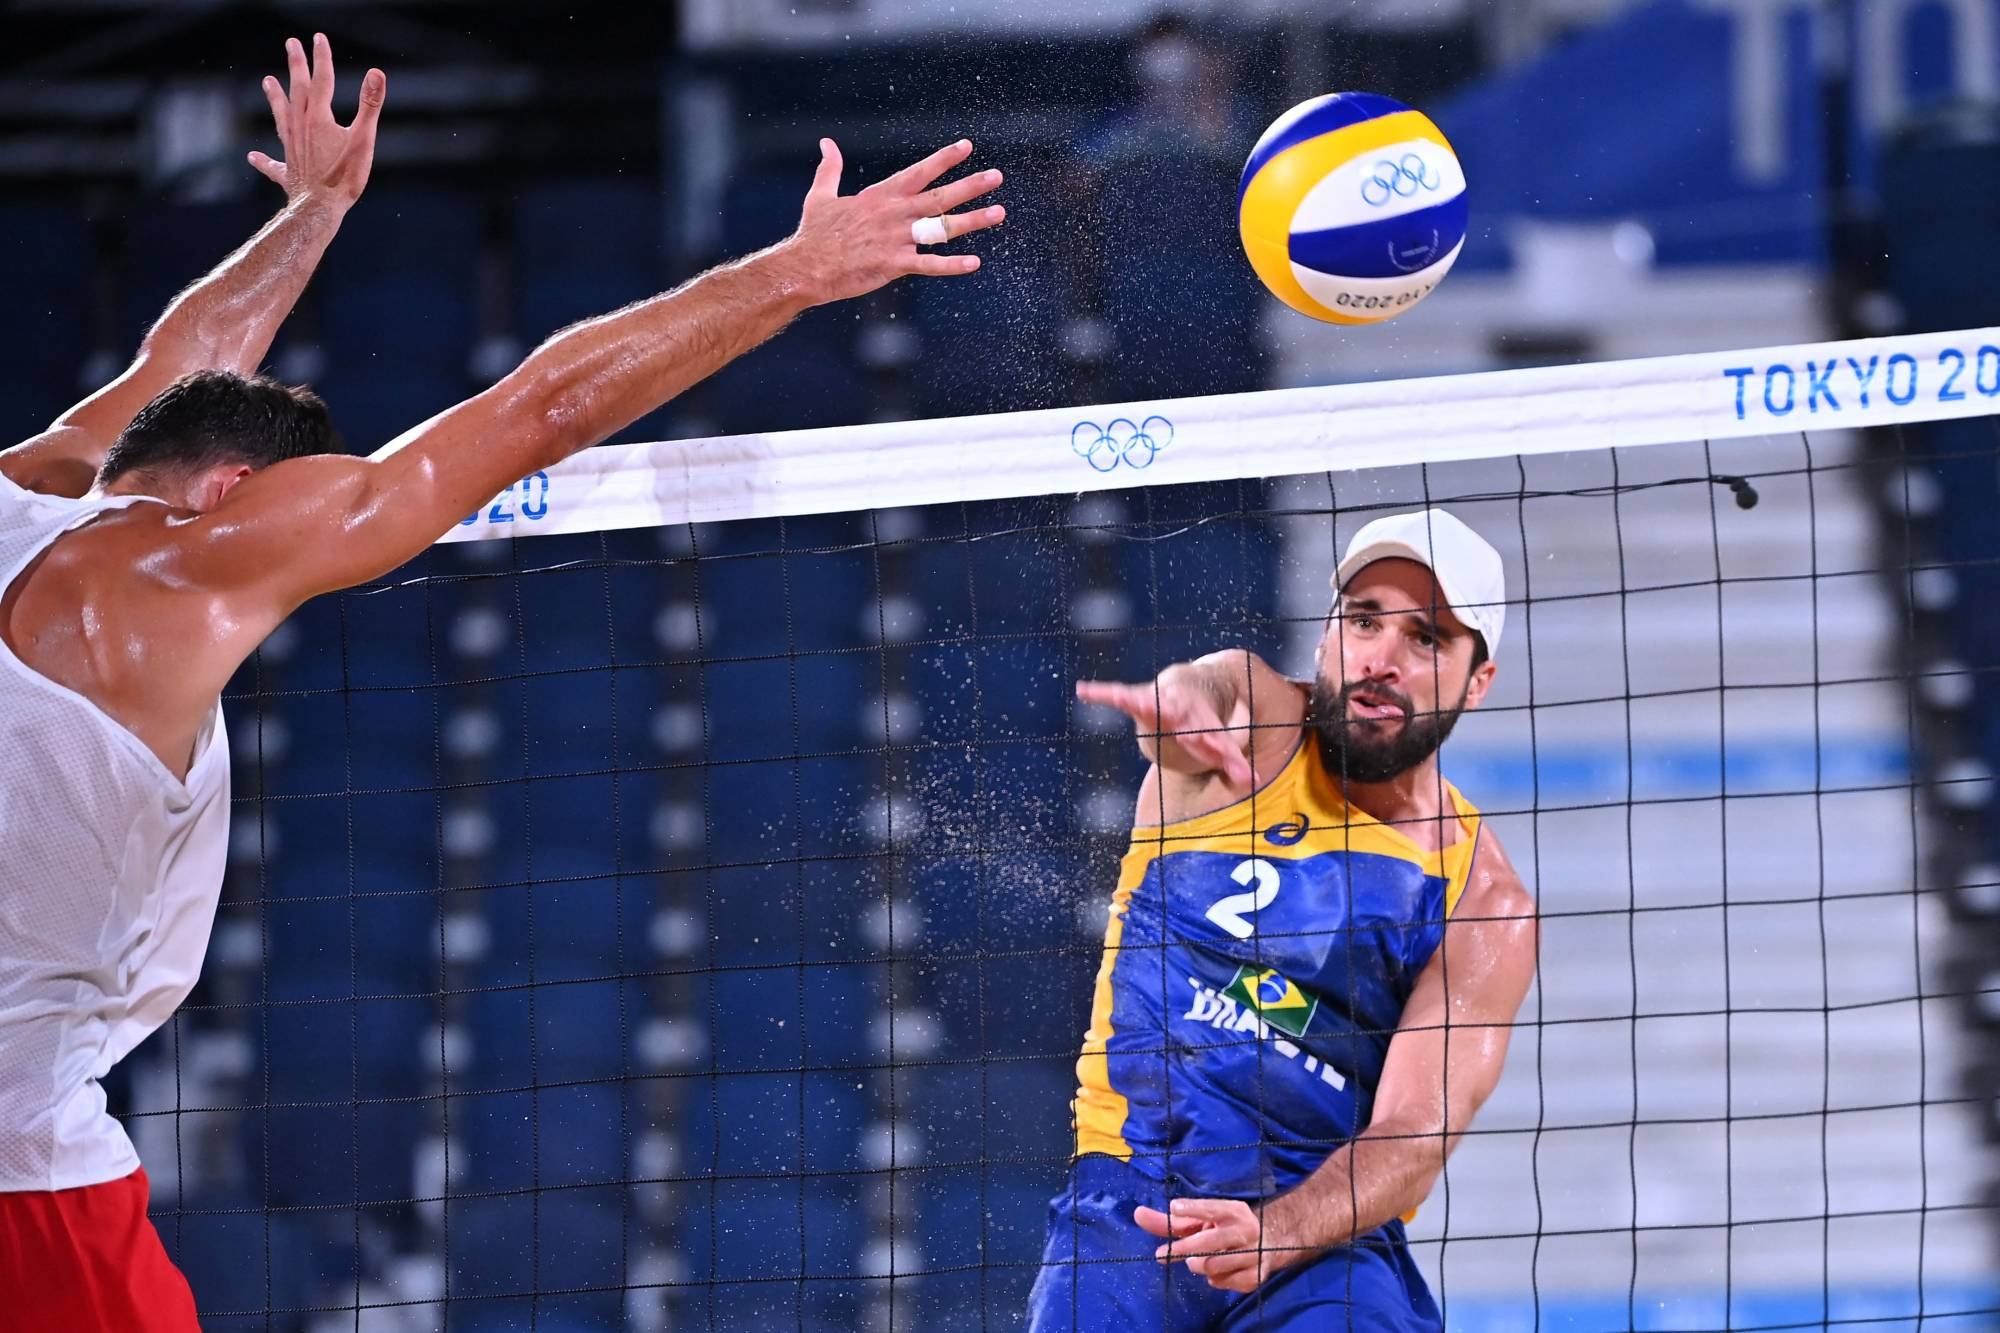 Brazil's Bruno Oscar Schmidt (right) spikes the ball as Poland's Michal Bryl defends in the men's preliminary beach volleyball pool match. | AFP-JIJI